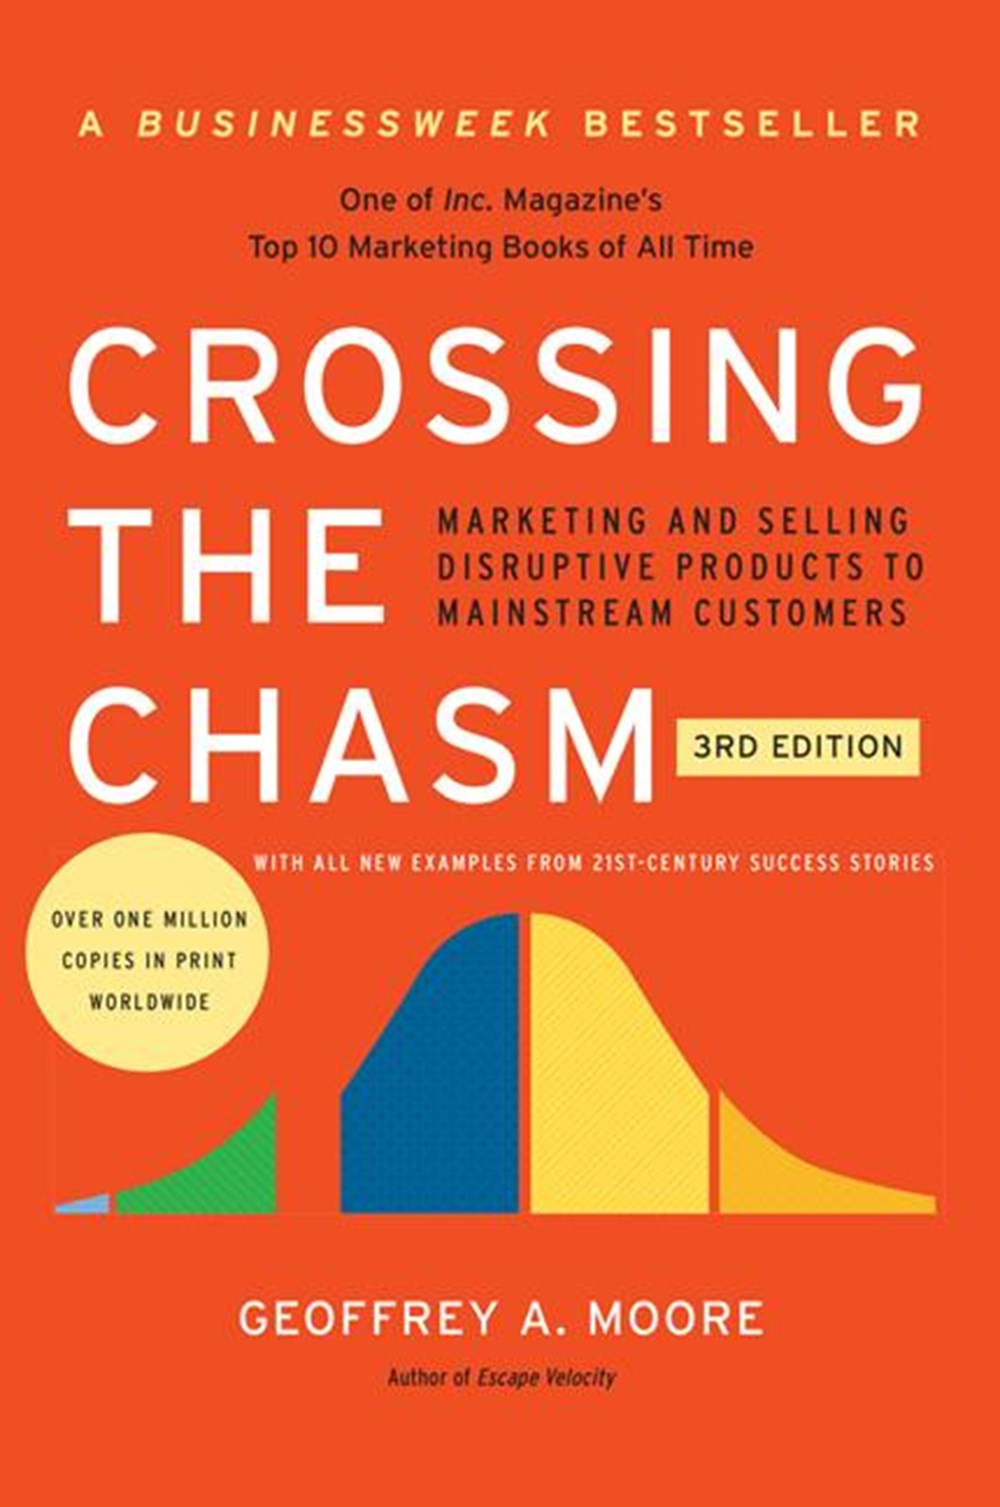 Crossing the Chasm, 3rd Edition Marketing and Selling Disruptive Products to Mainstream Customers